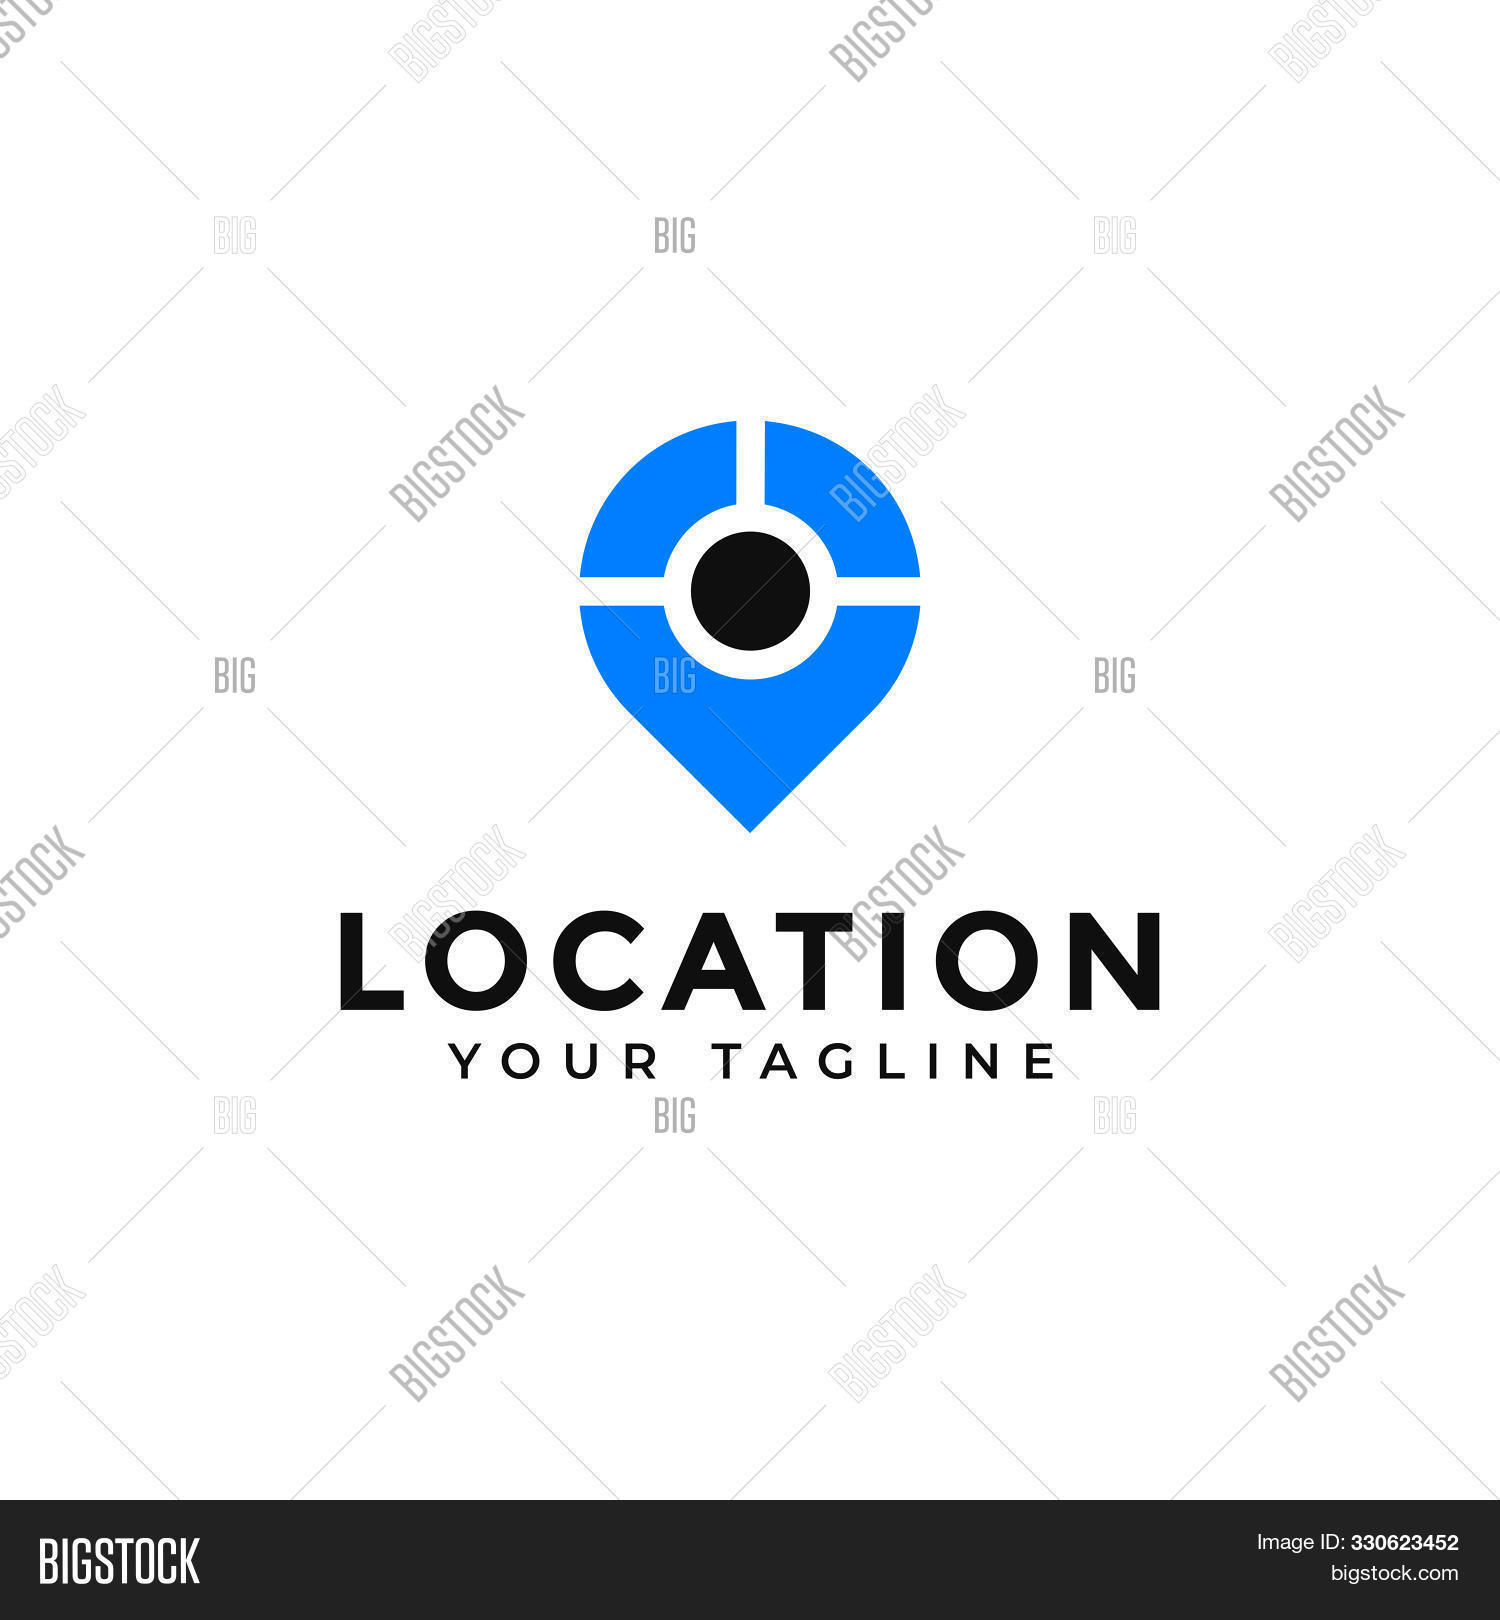 Location, Point, Gps Vector & Photo (Free Trial) | Bigstock